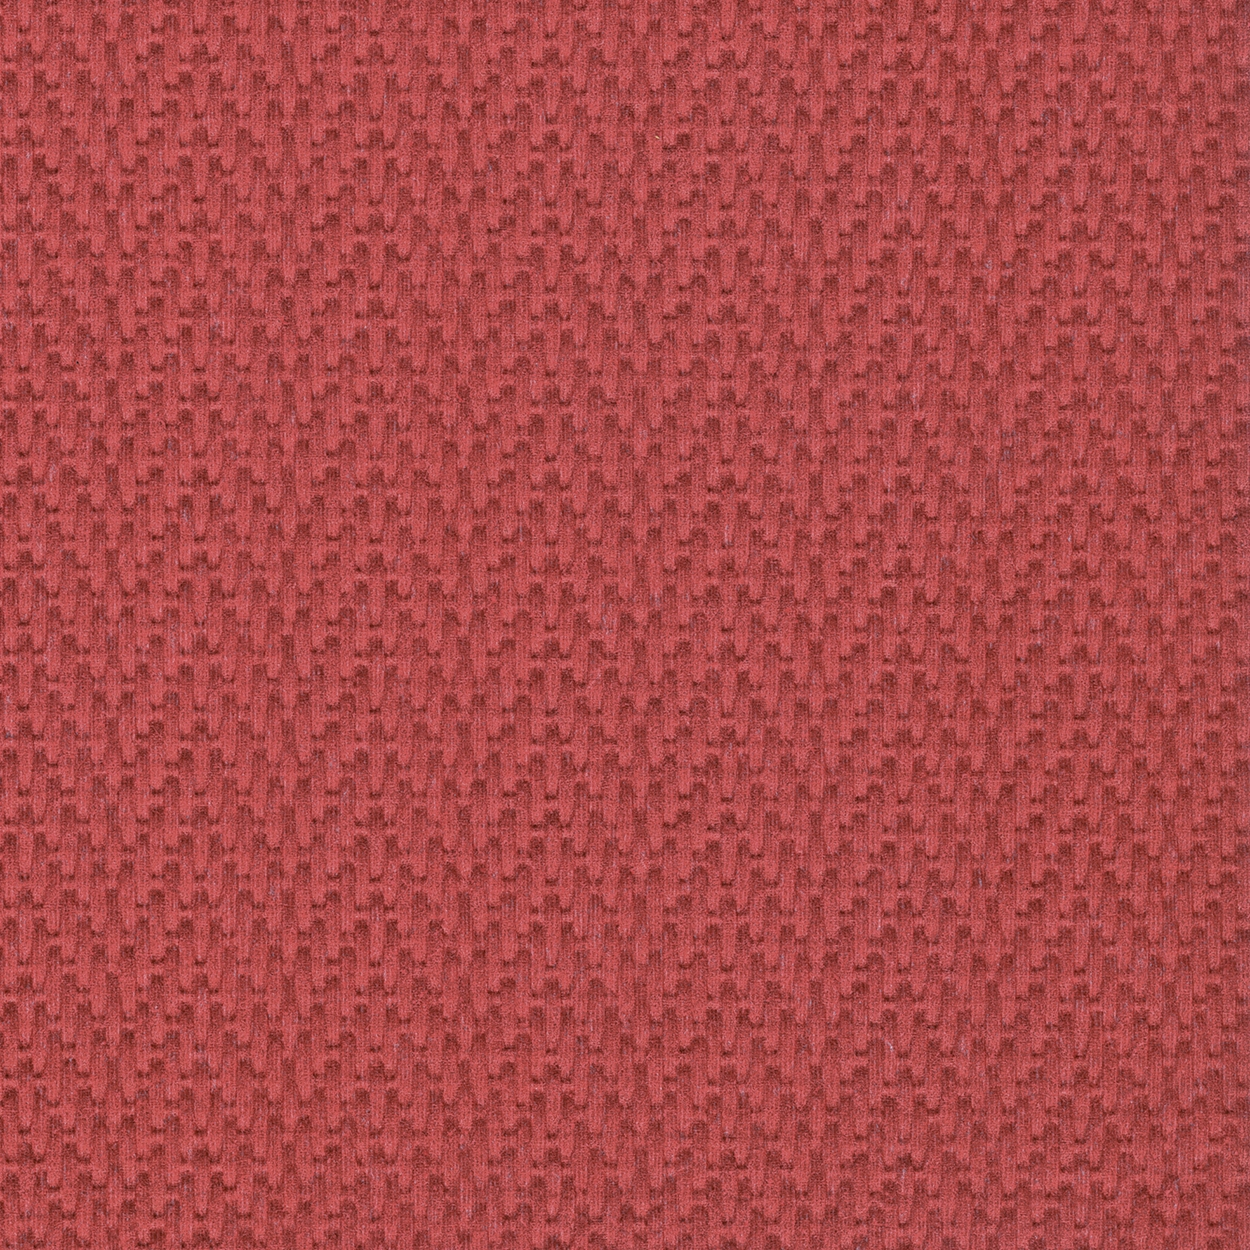 Napkins 24x24 cm - Moments Woven red